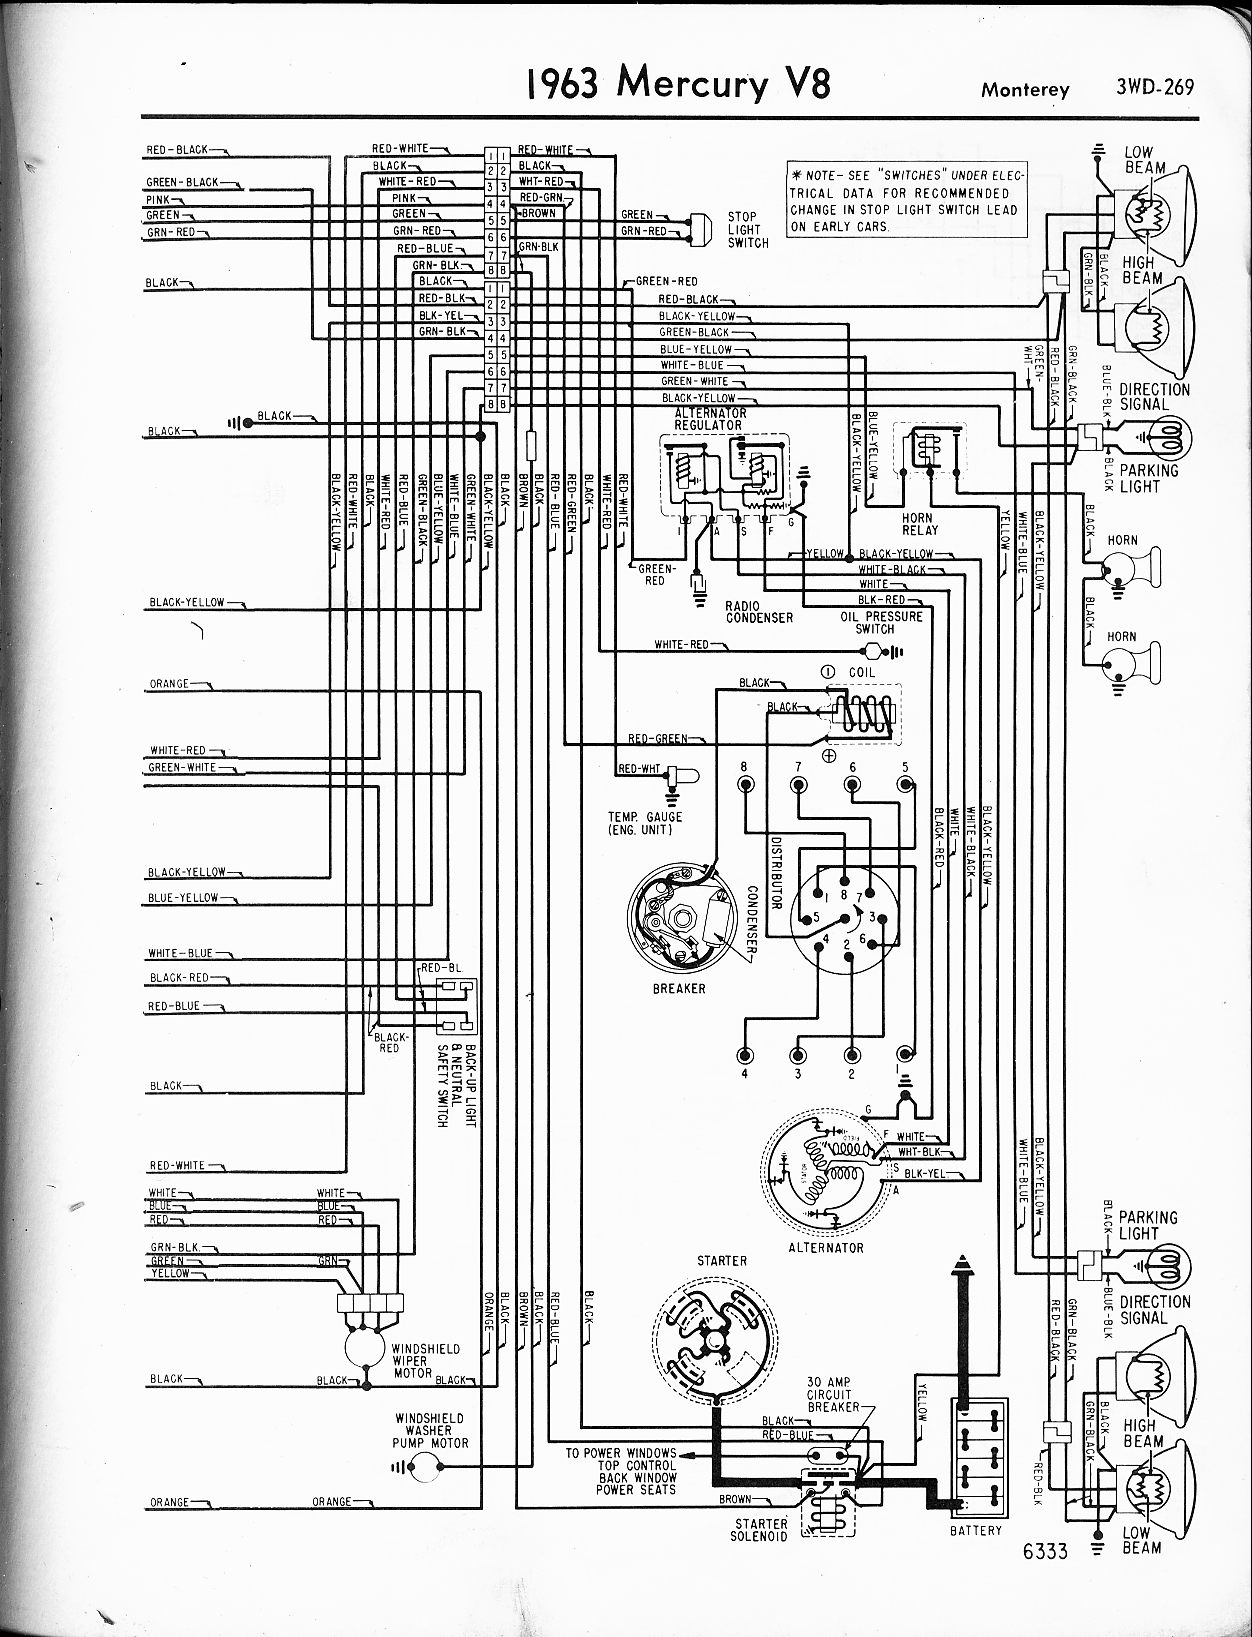 1964 mercury marauder wiring diagram